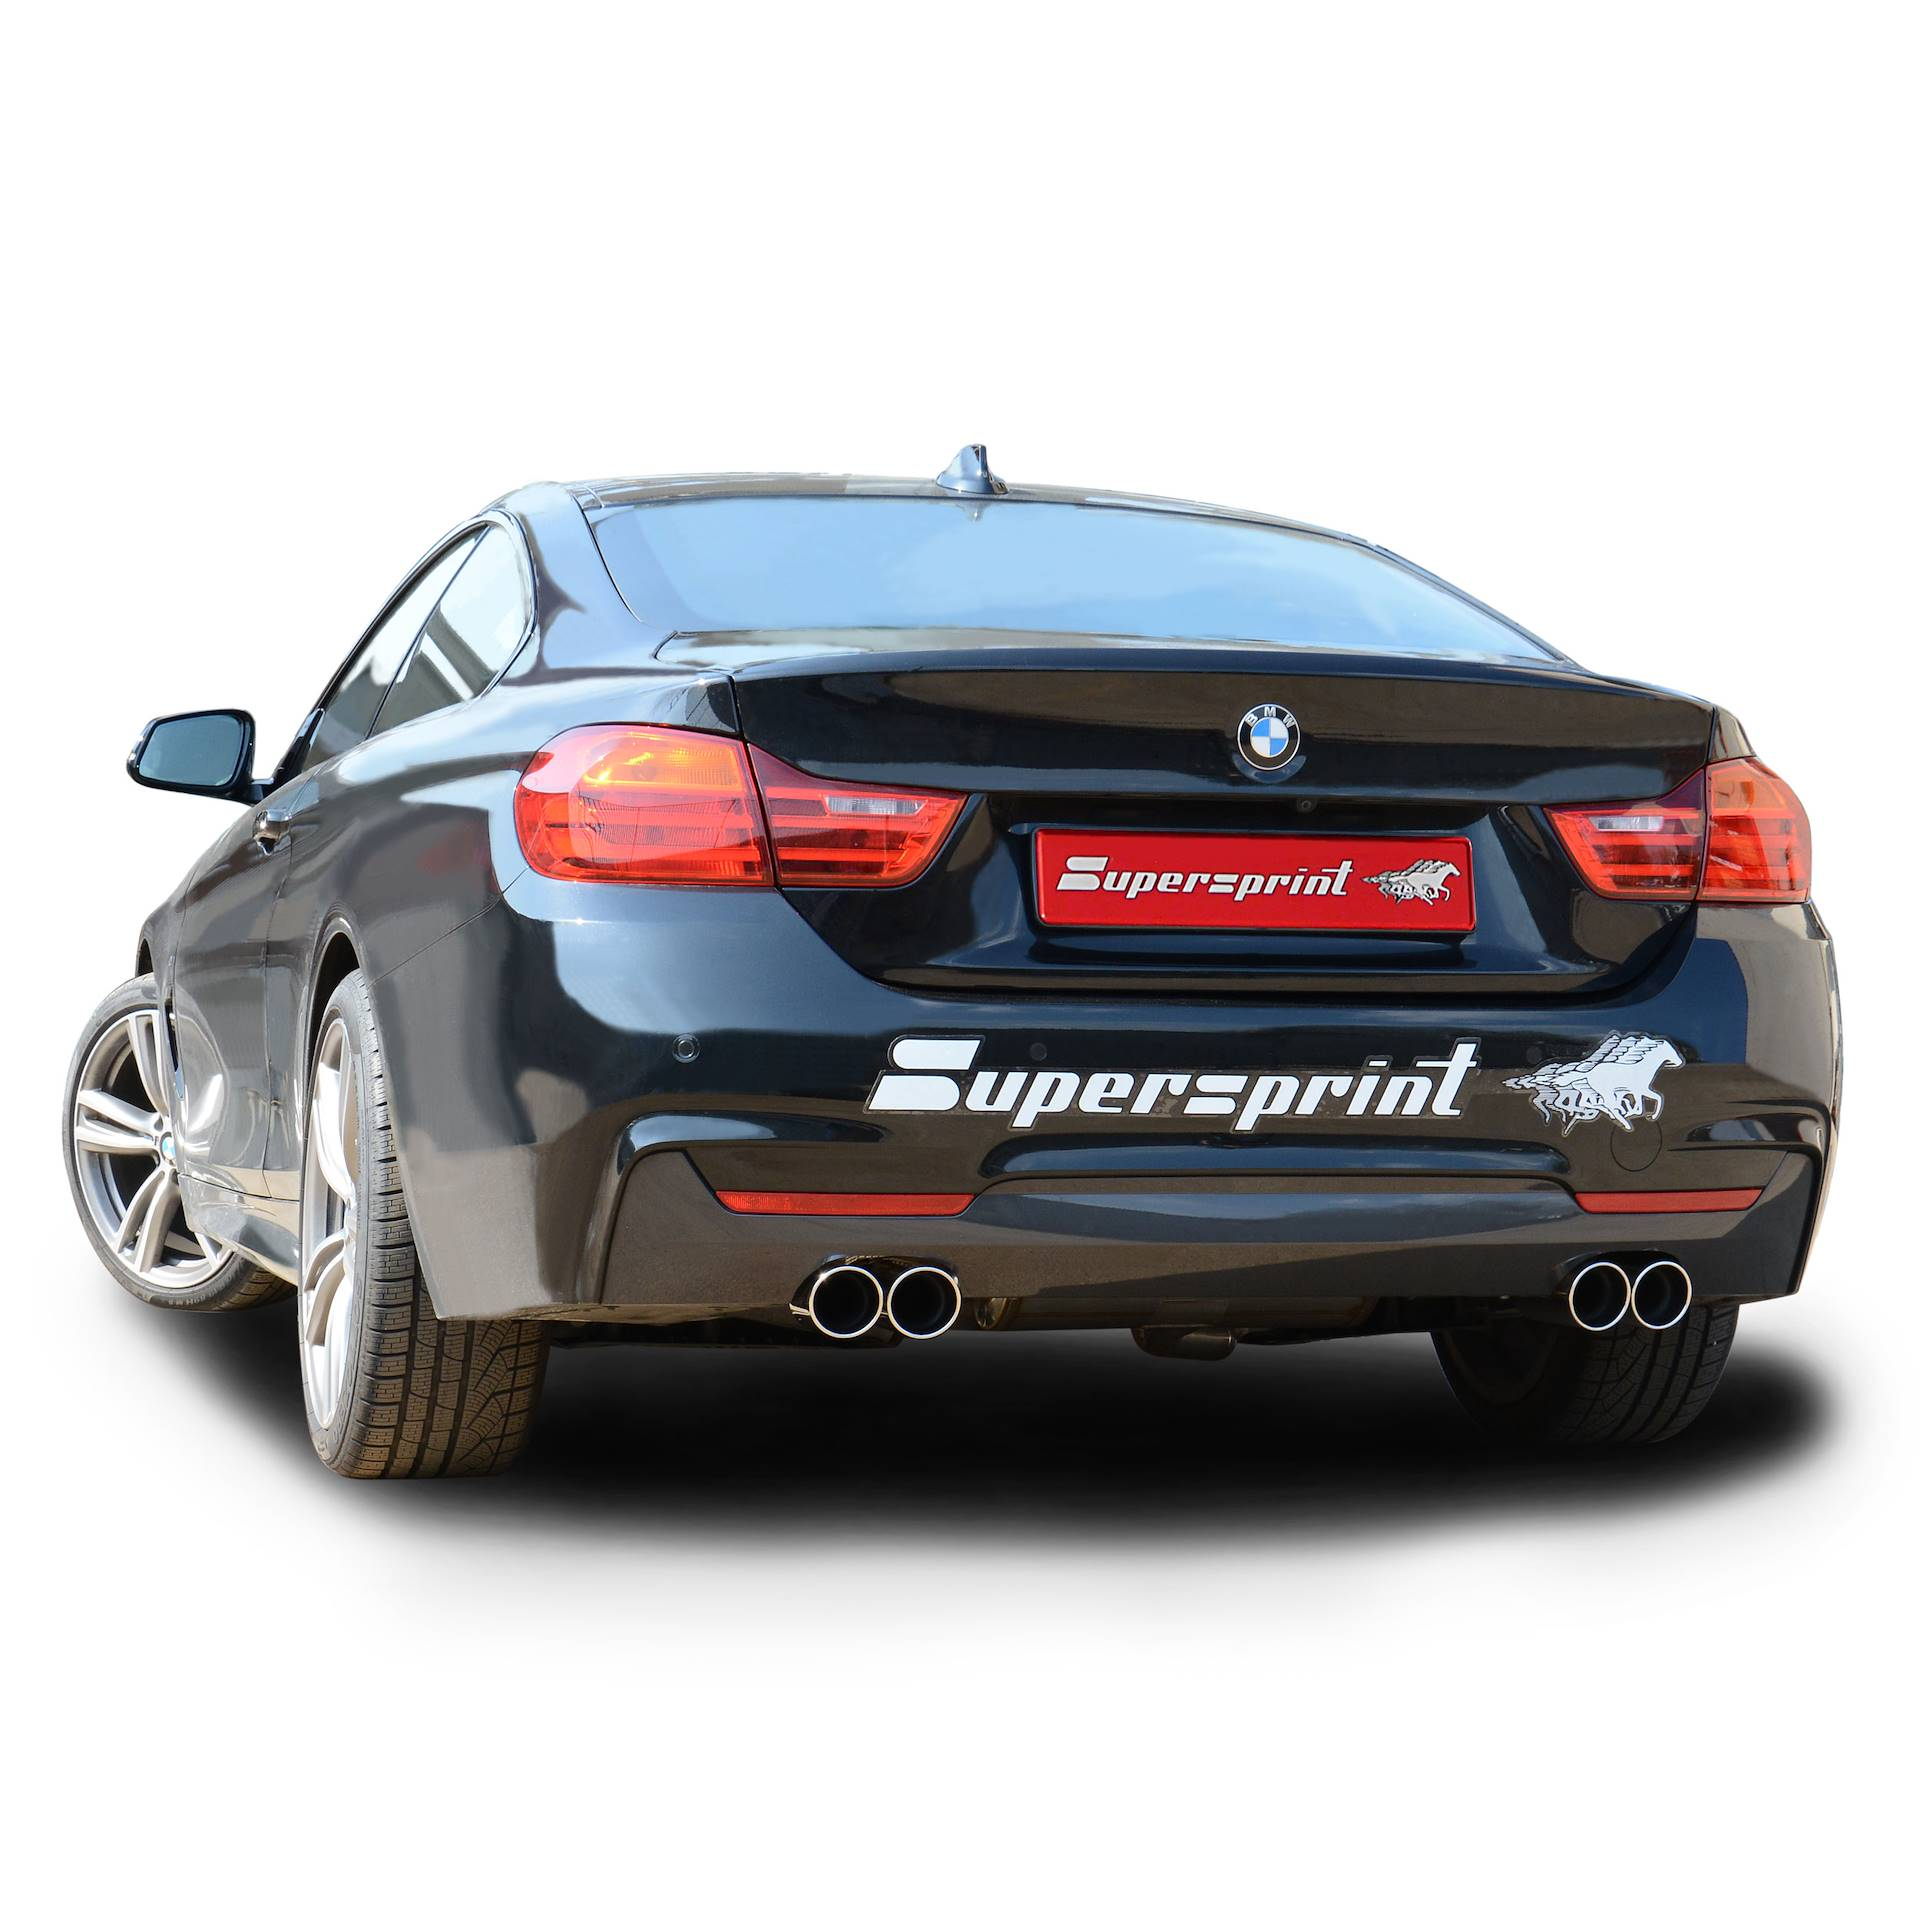 BMW - BMW F32 Coupè 420d (N47 - 184 PS) 2013 -> 2015